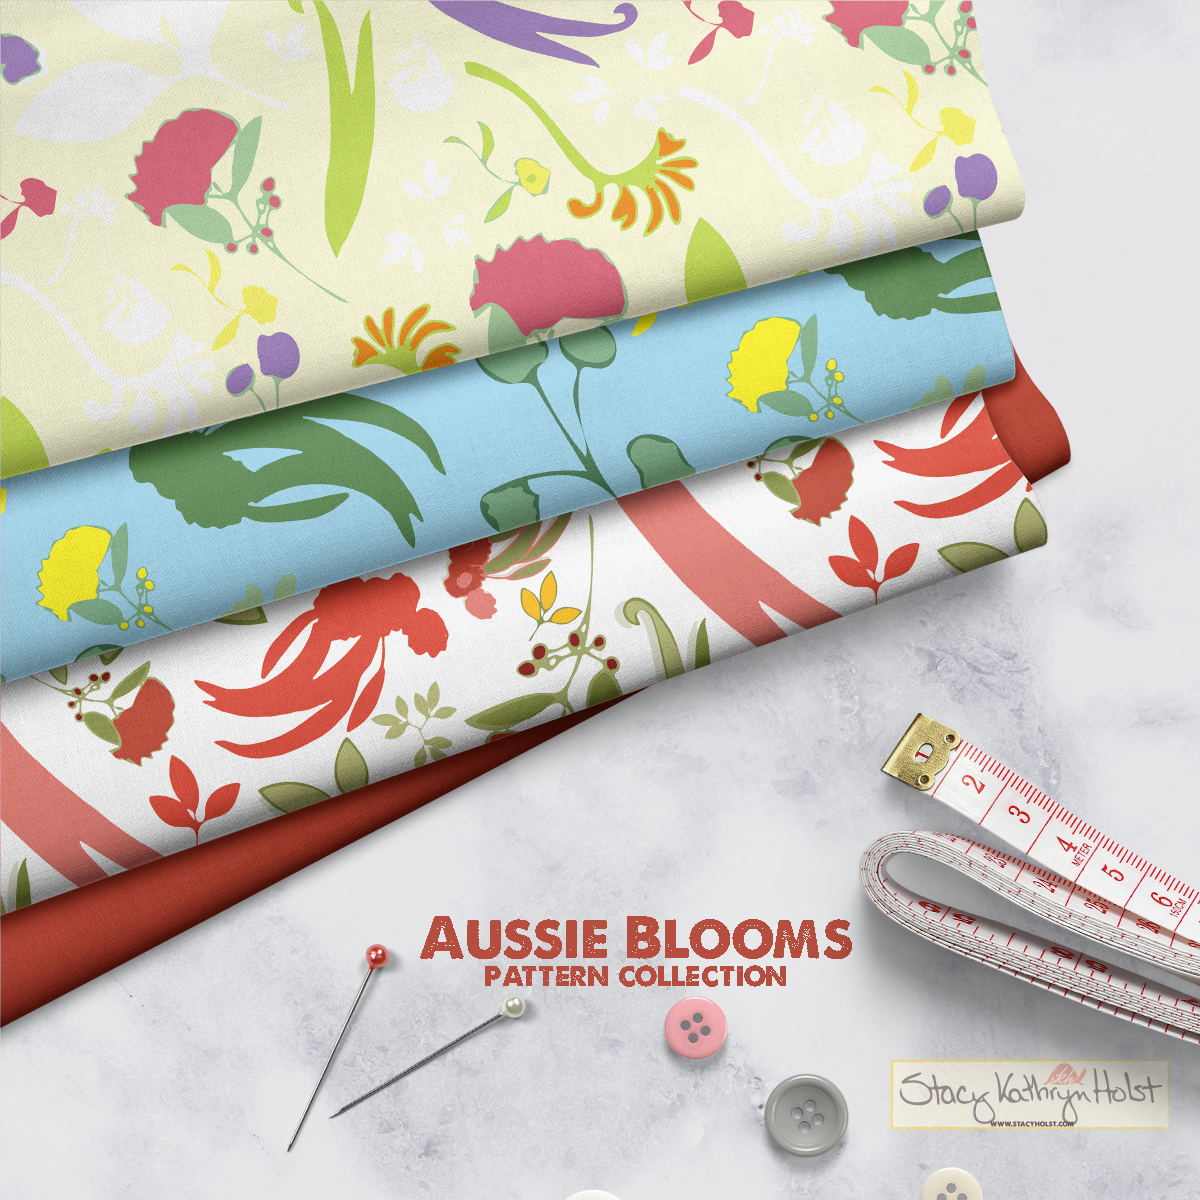 Aussie Blooms Pattern Collection Mockup